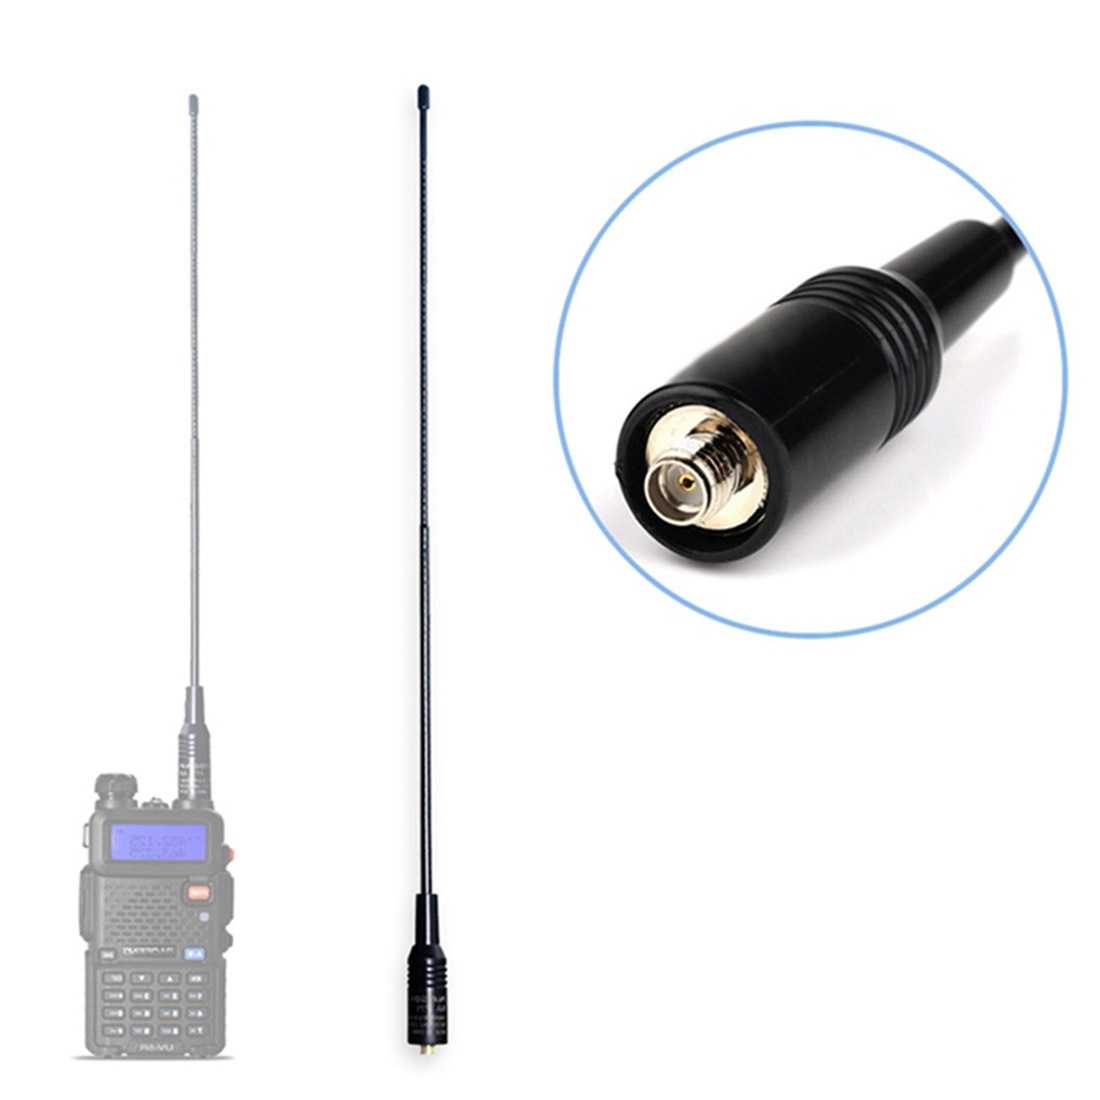 40cm Walkie-talkie Dual-band Antenna Handheld SMA-F771 Gain Soft Antenna UV Hand-held Dual-segment  For Baofeng UV5R